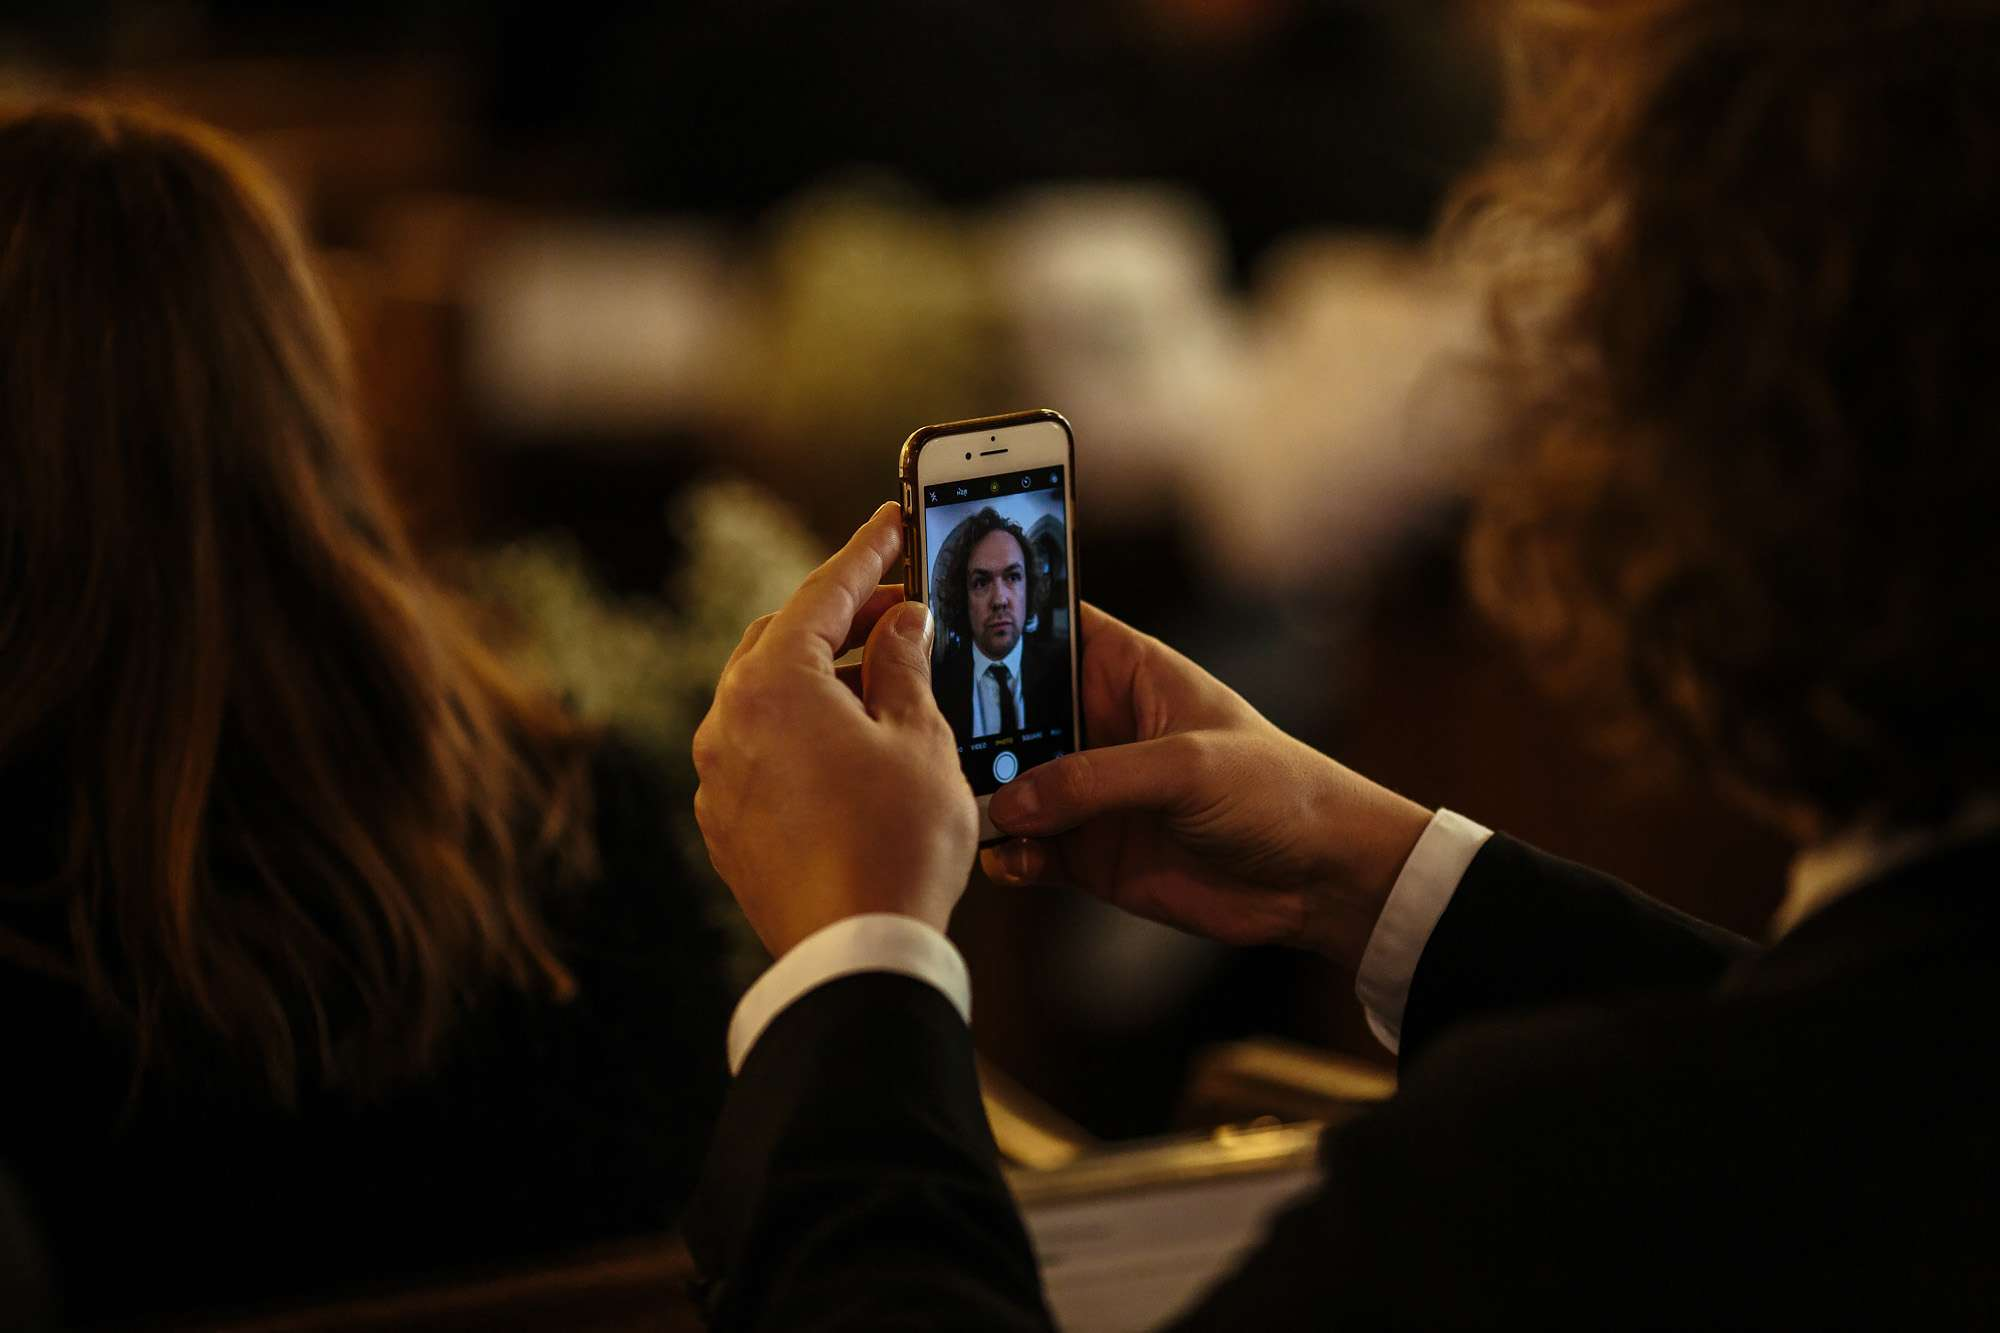 Wedding guest takes a selfie in the church